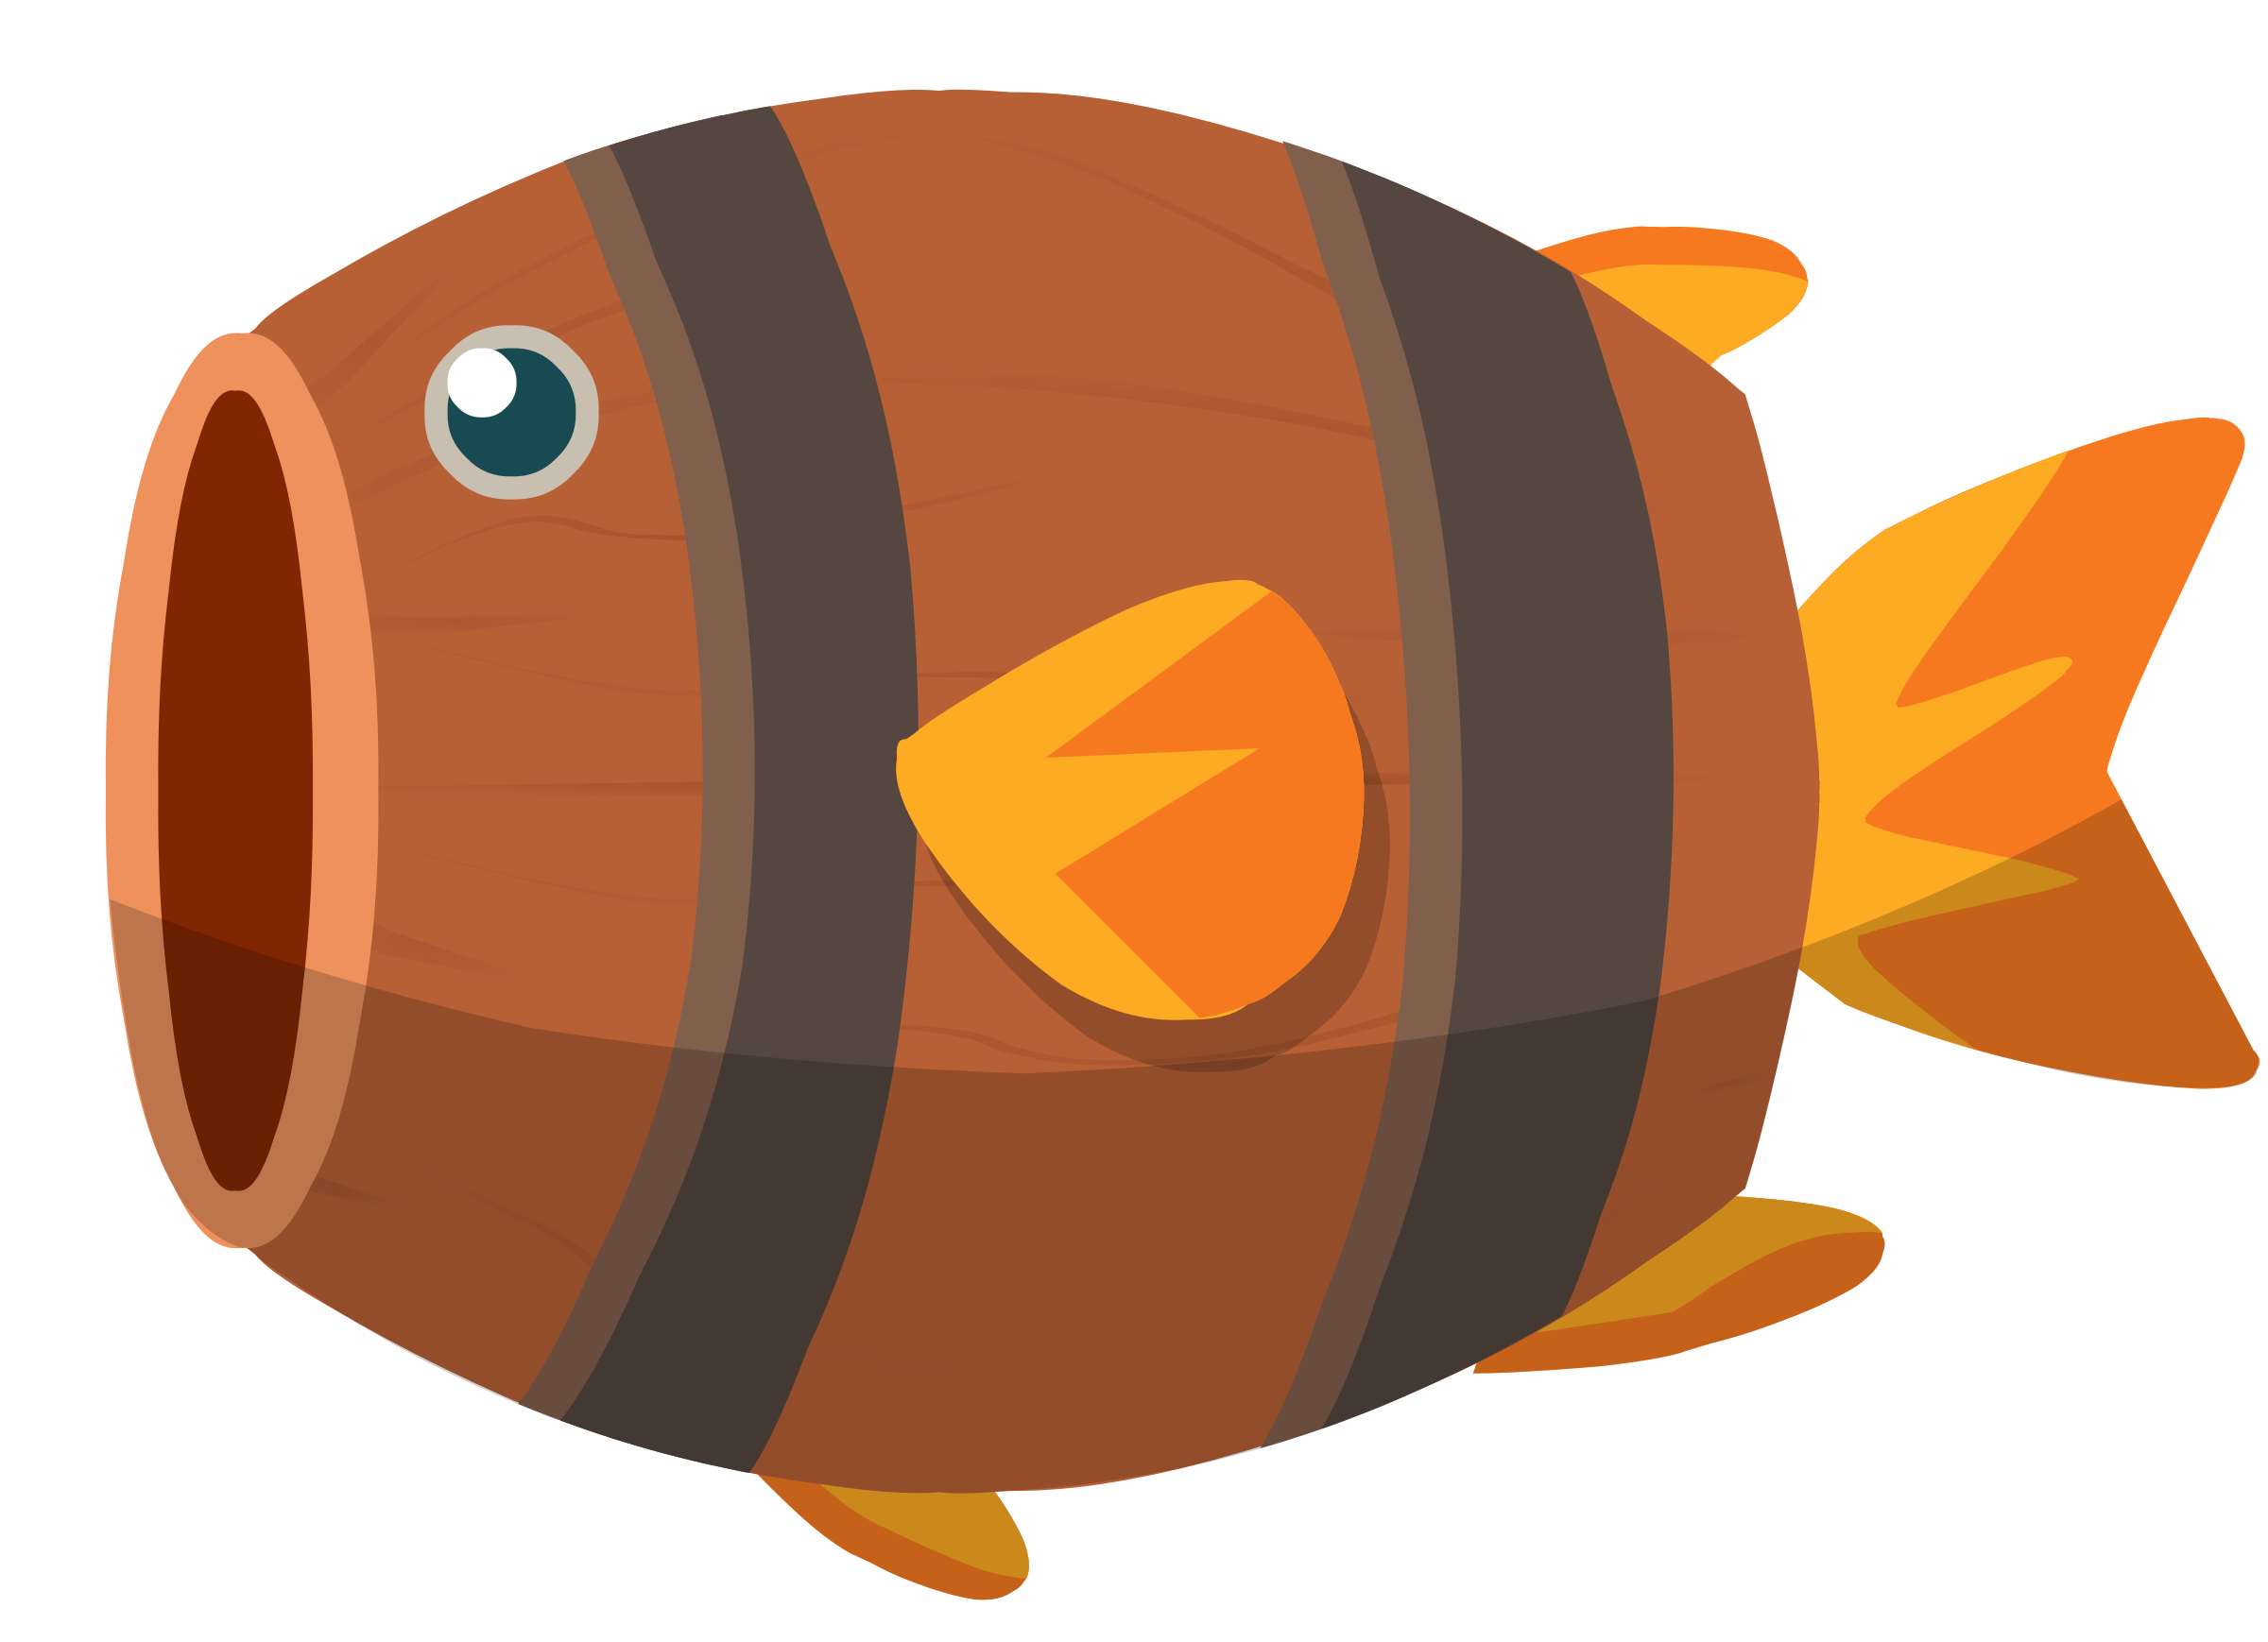 Barrel Fish Animation by danjiro